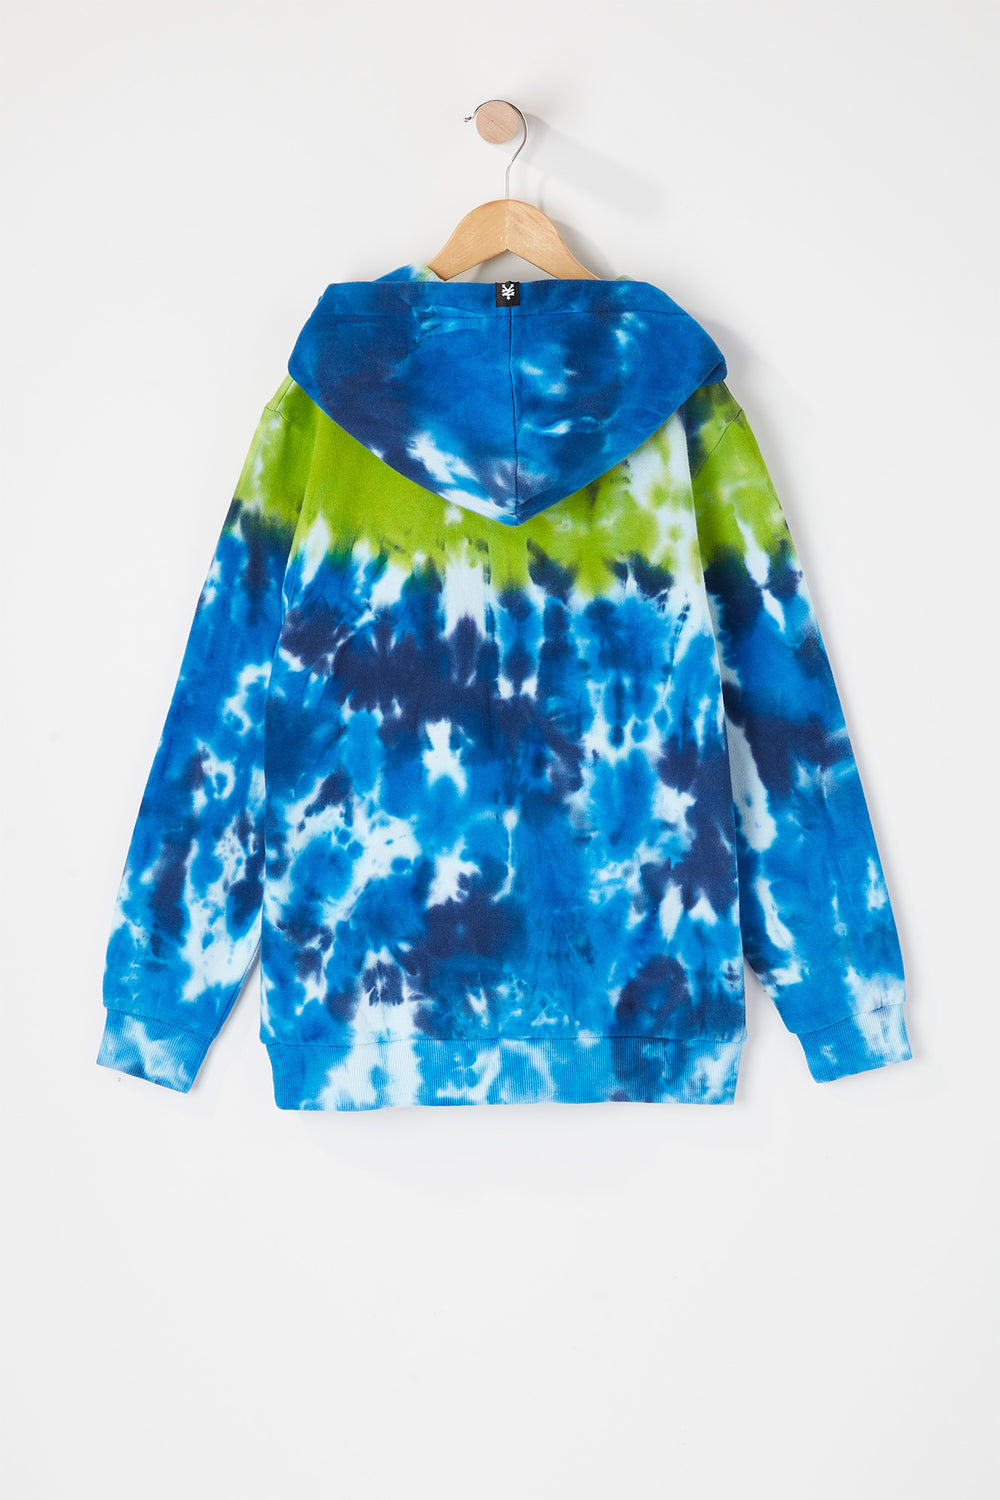 Zoo York Youth Tie-Dye Hoodie Dark Blue